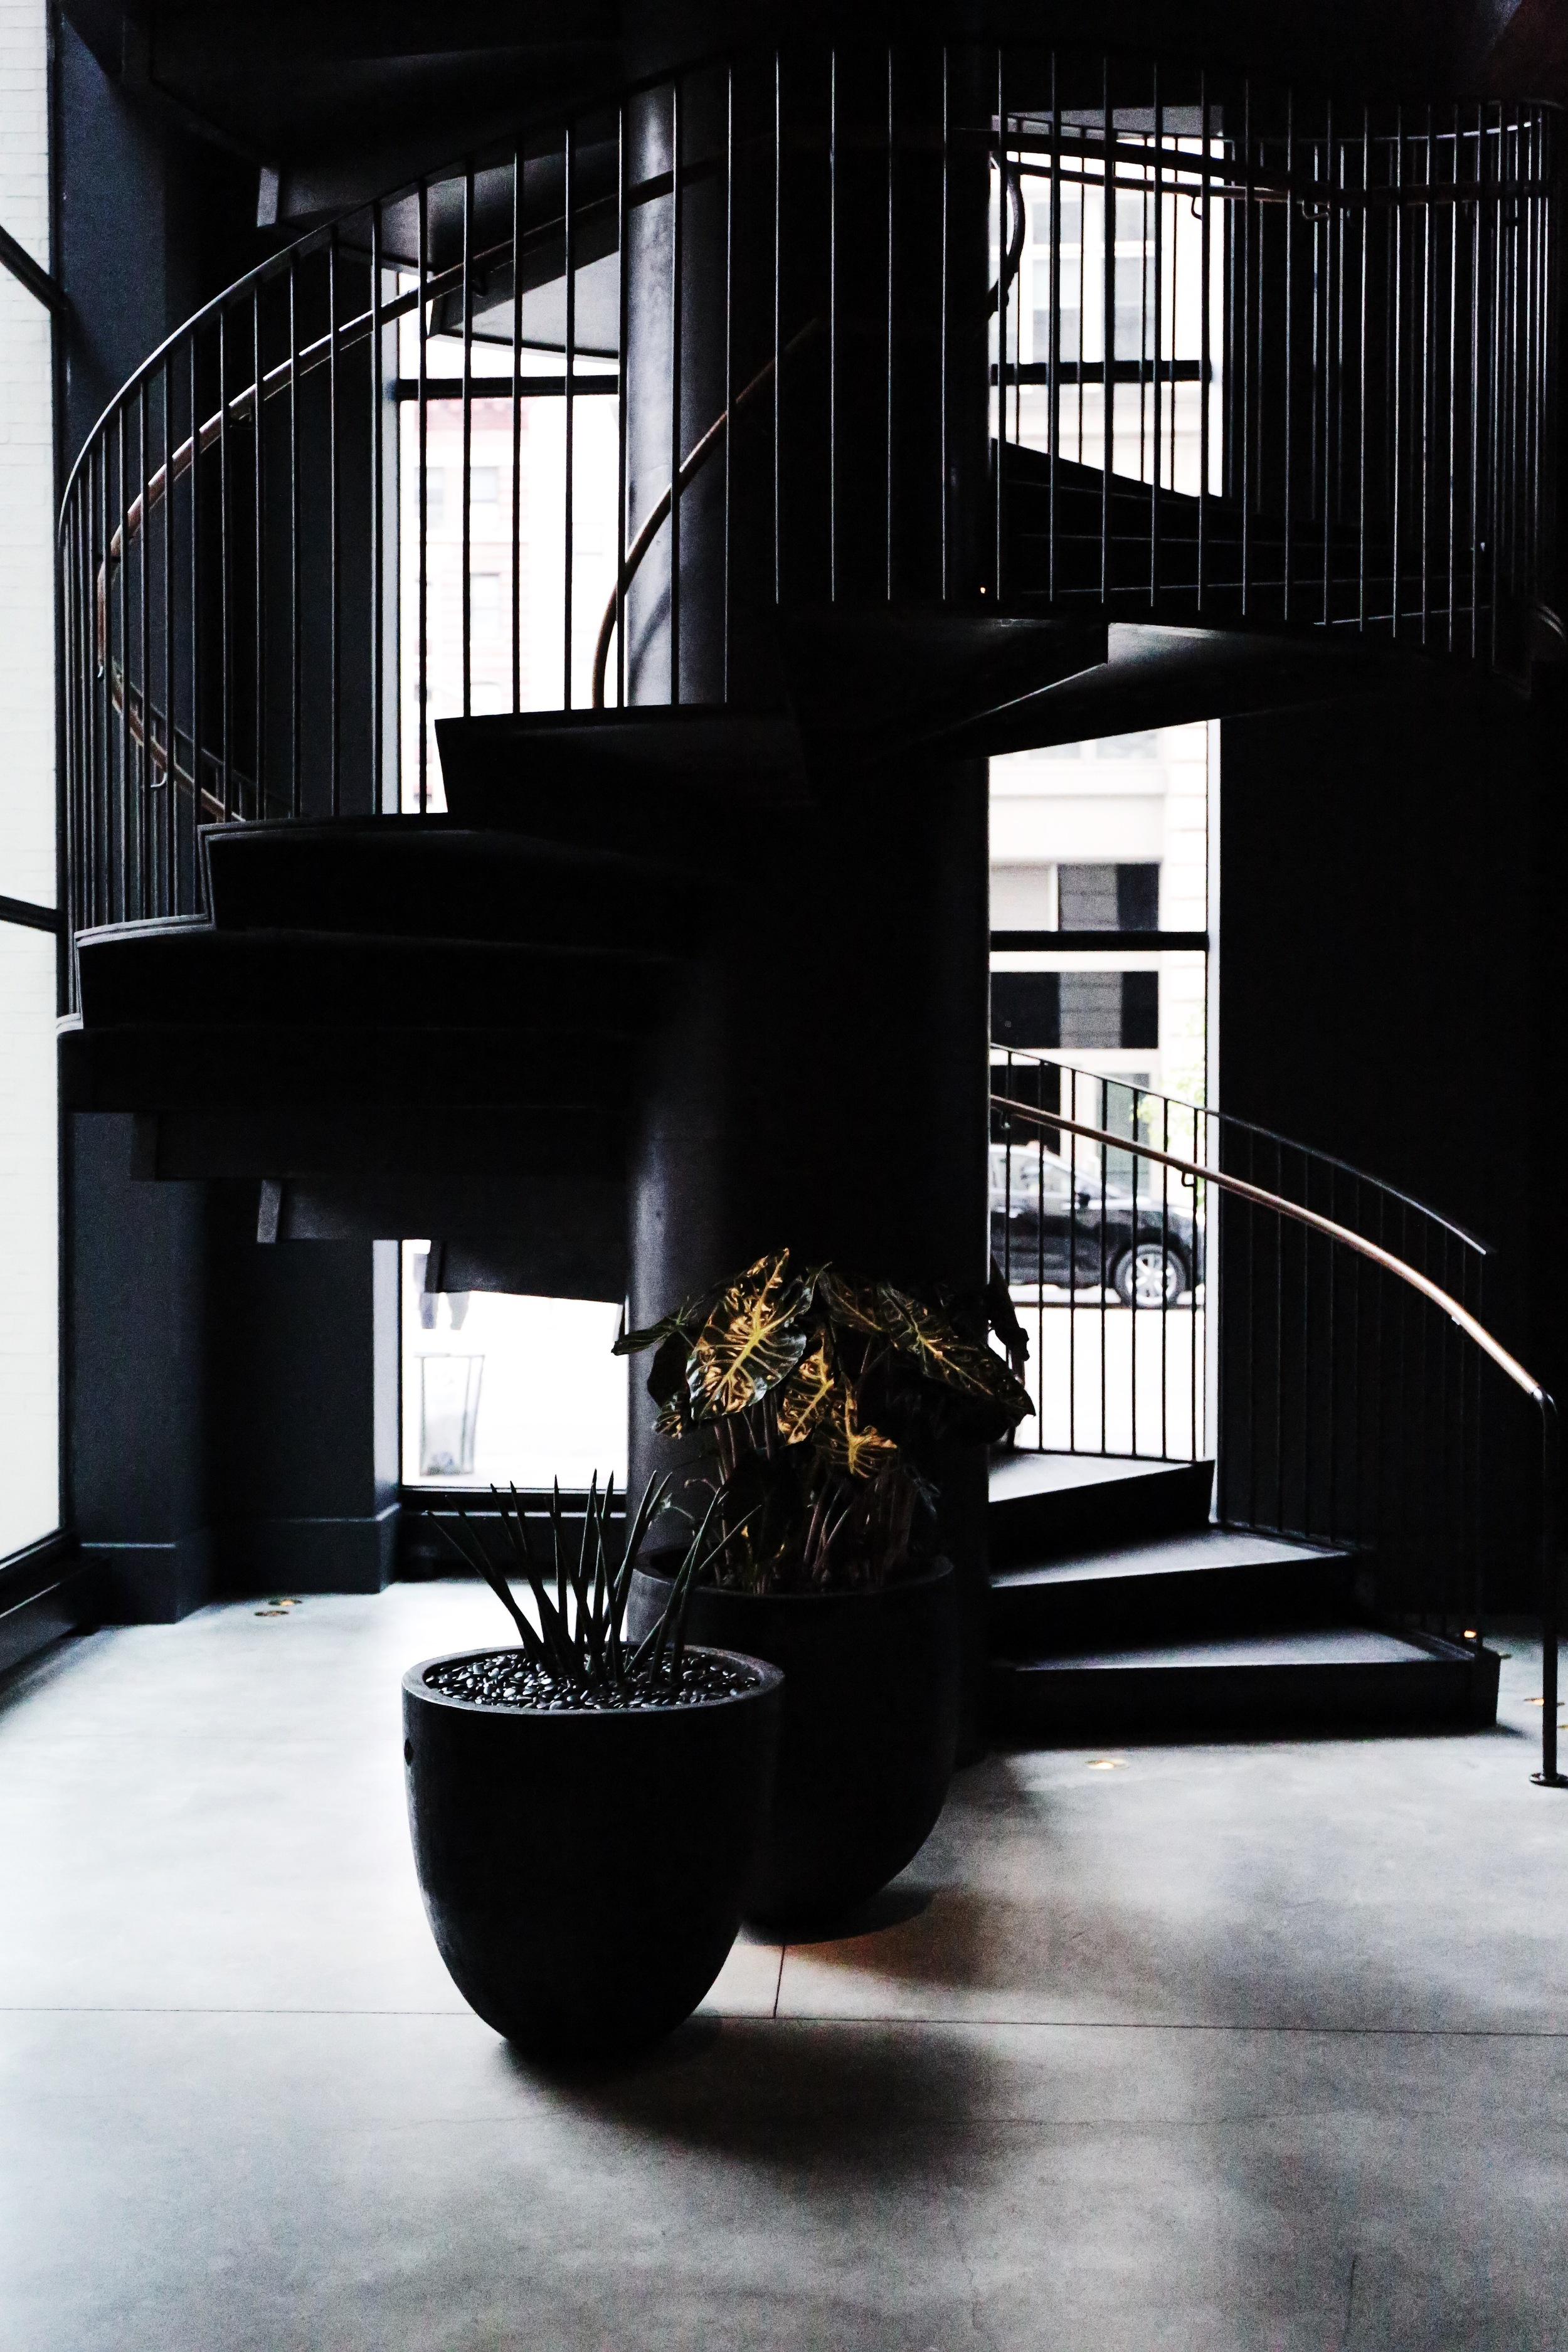 This staircase led to the second story library area. A must see whether you are staying at the 11 Howard or not as it is open to the public.